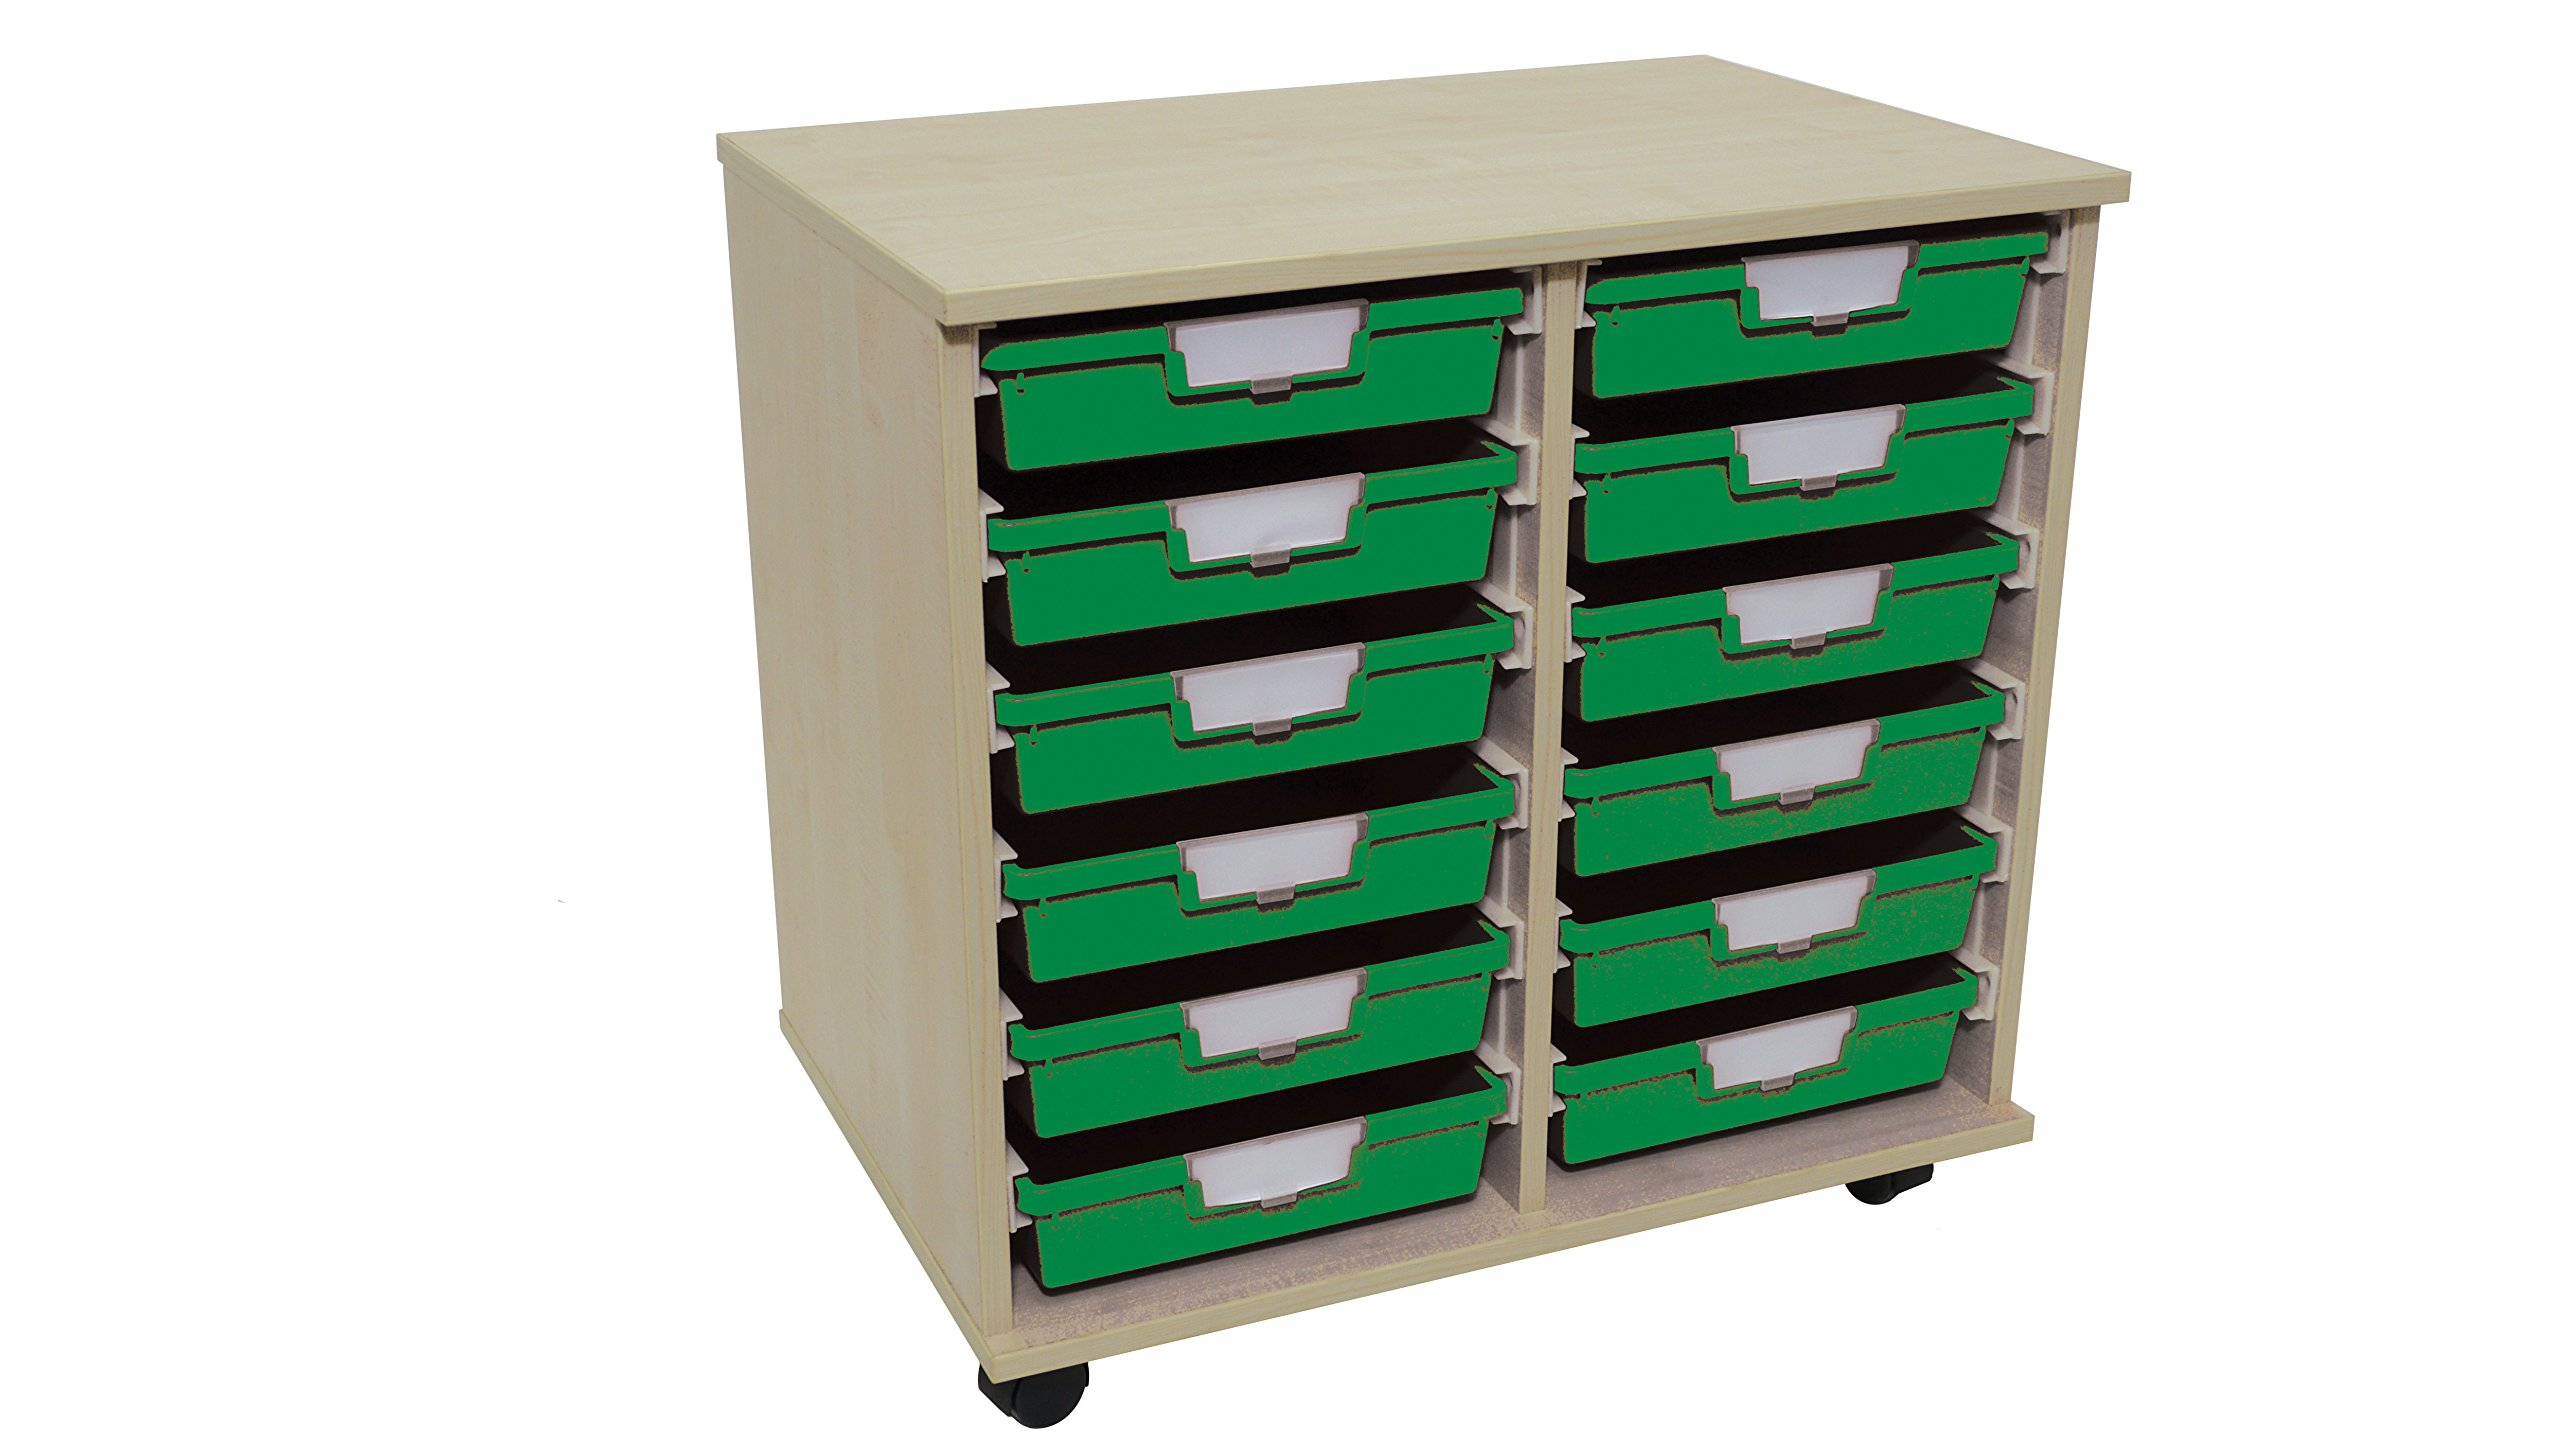 Swift 'Slim Line' Wood Cart 12 Tray Green by StorSystemUSA (Image #3)